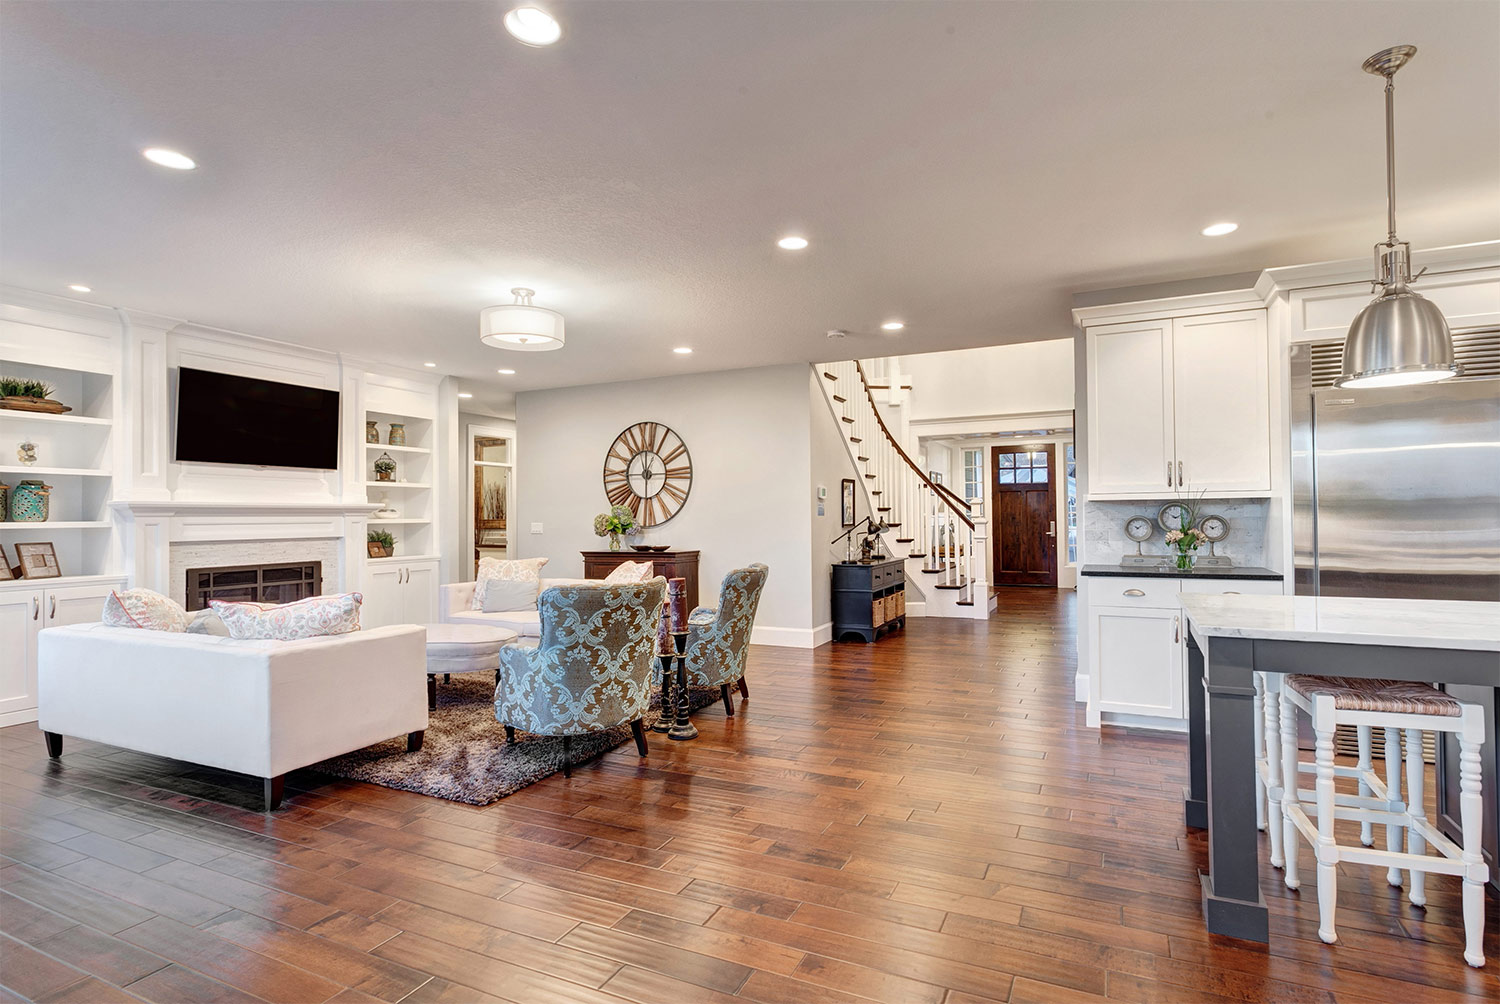 Hire A Hubby   Renovations, Remodeling & Additions